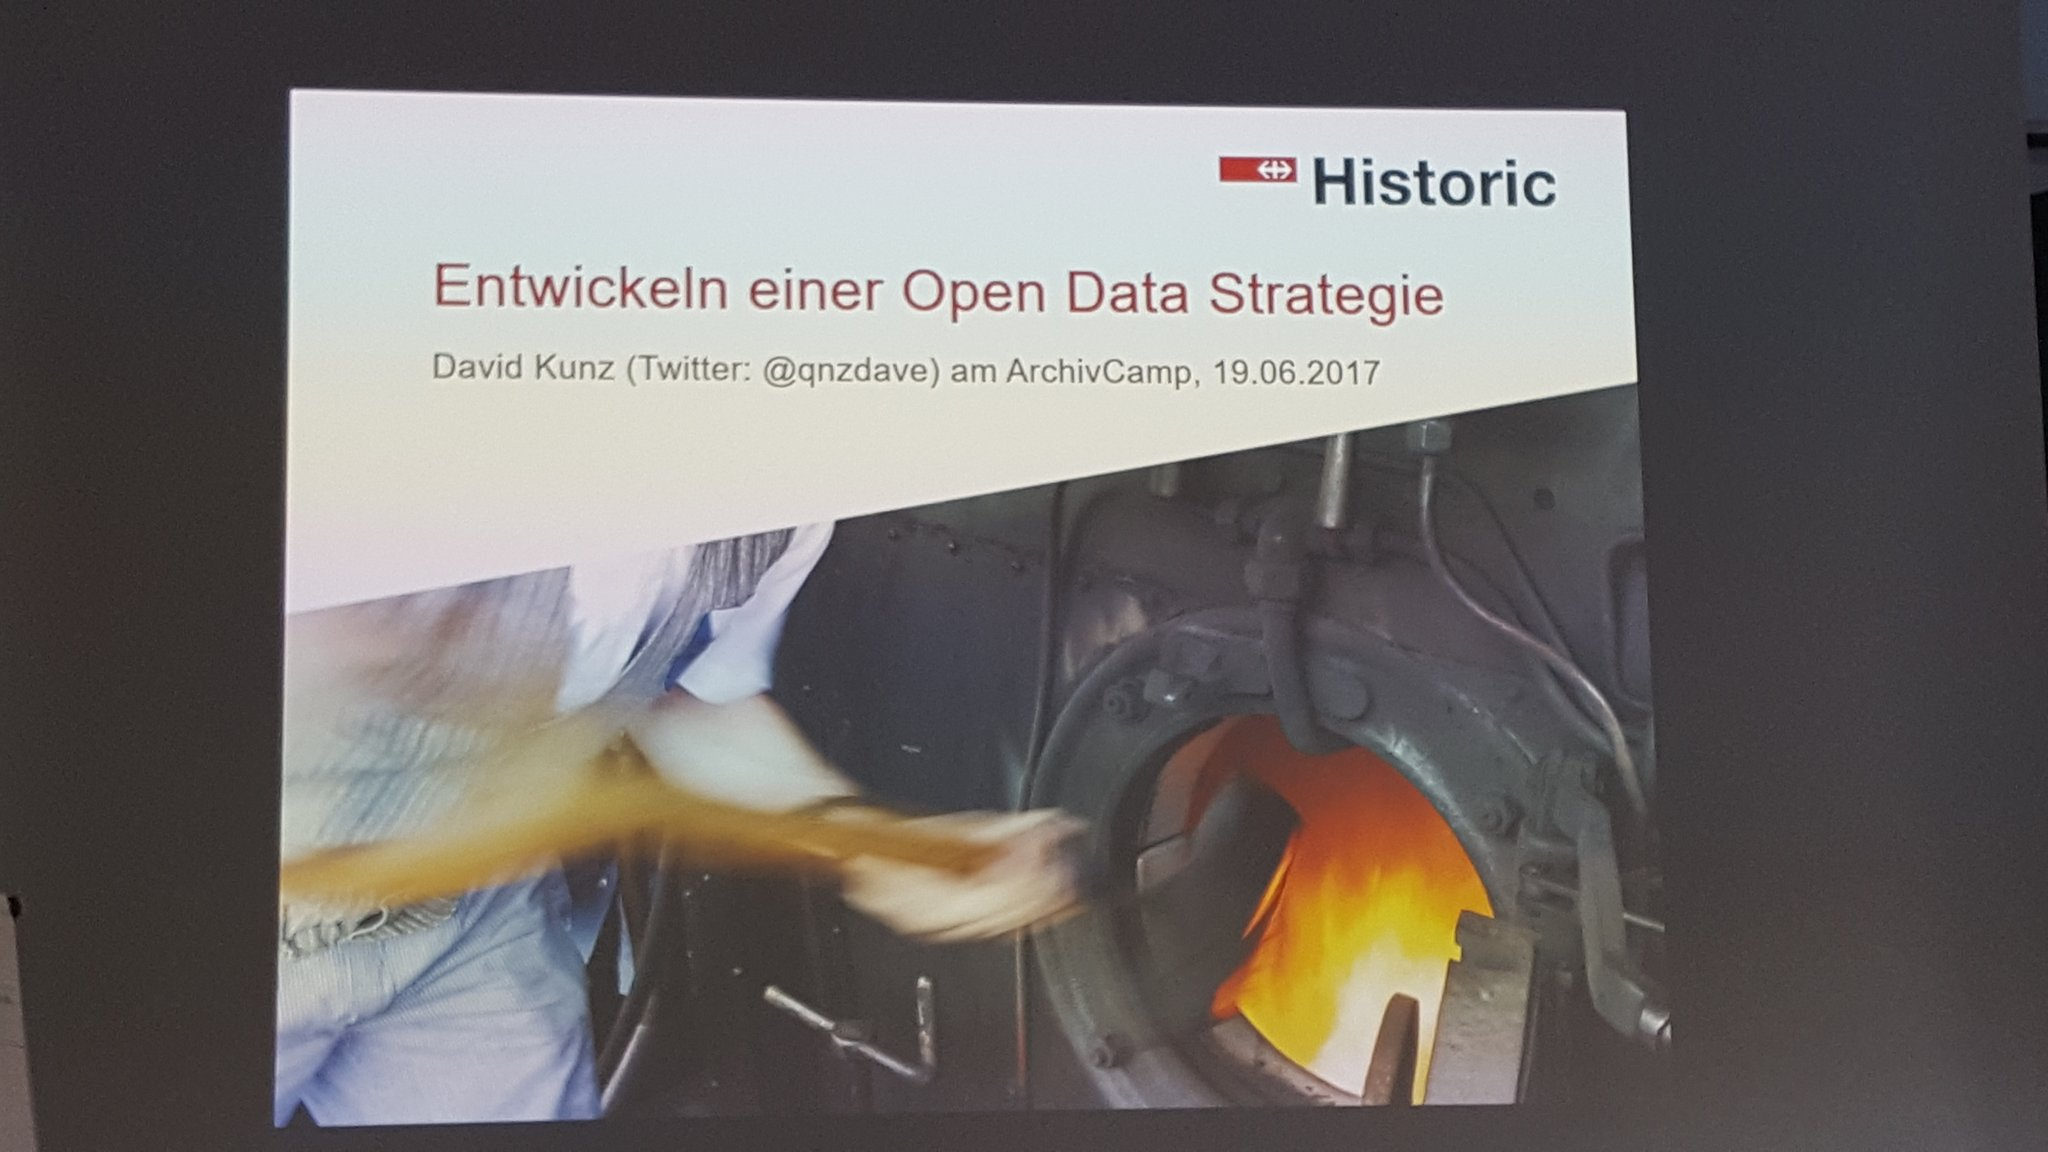 Session III #archivcamp : Open Data in #businessarchives. David Kunz #SBB https://t.co/0NRnbxqO1g